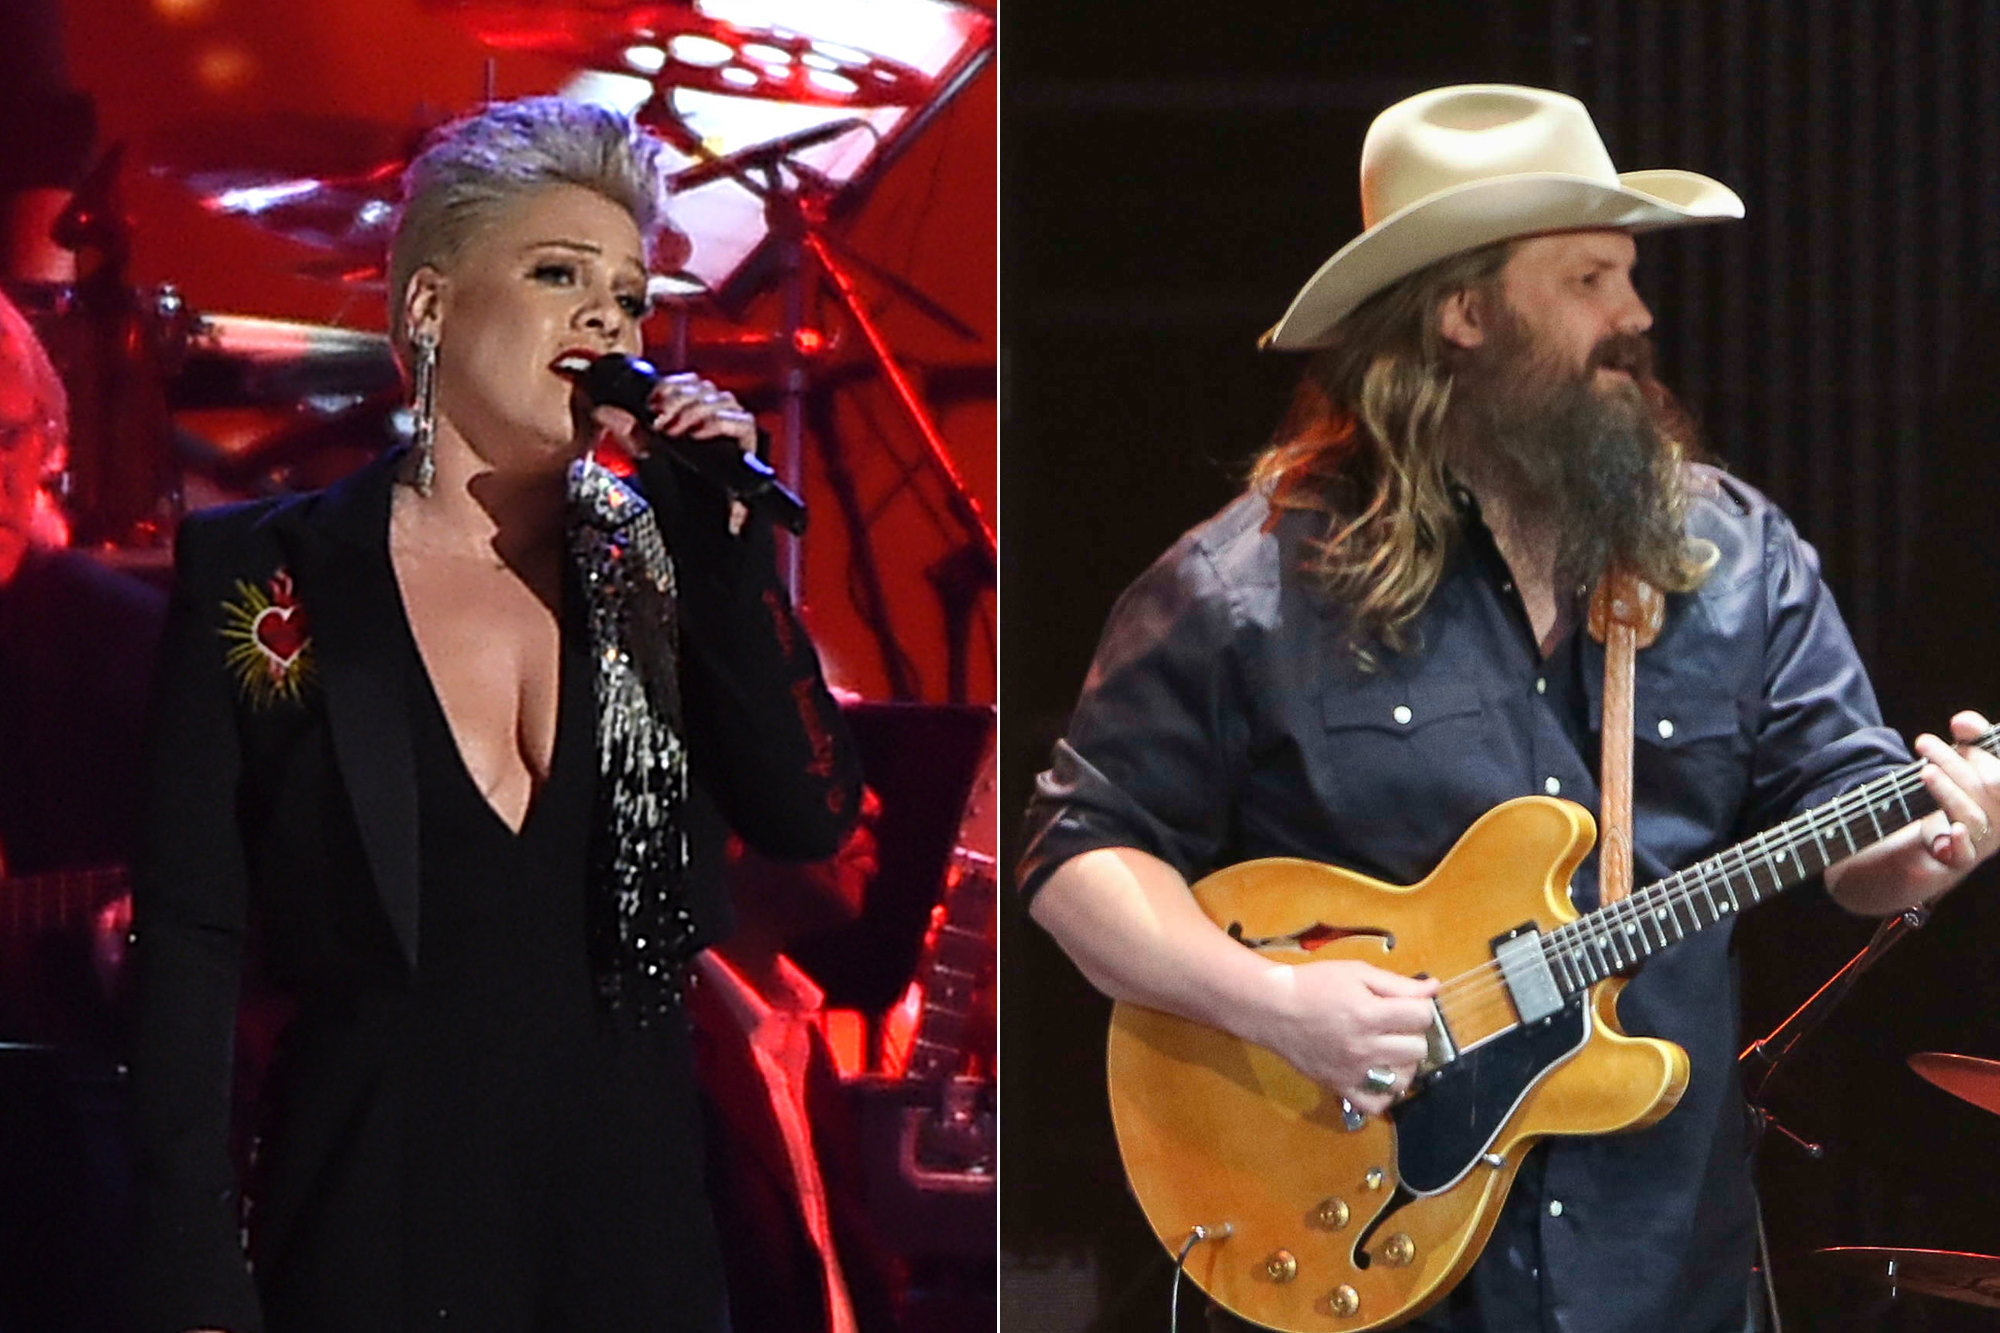 Listen Now: Pink, Chris Stapleton's 'Love Me Anyway': Listen – Rolling Stone